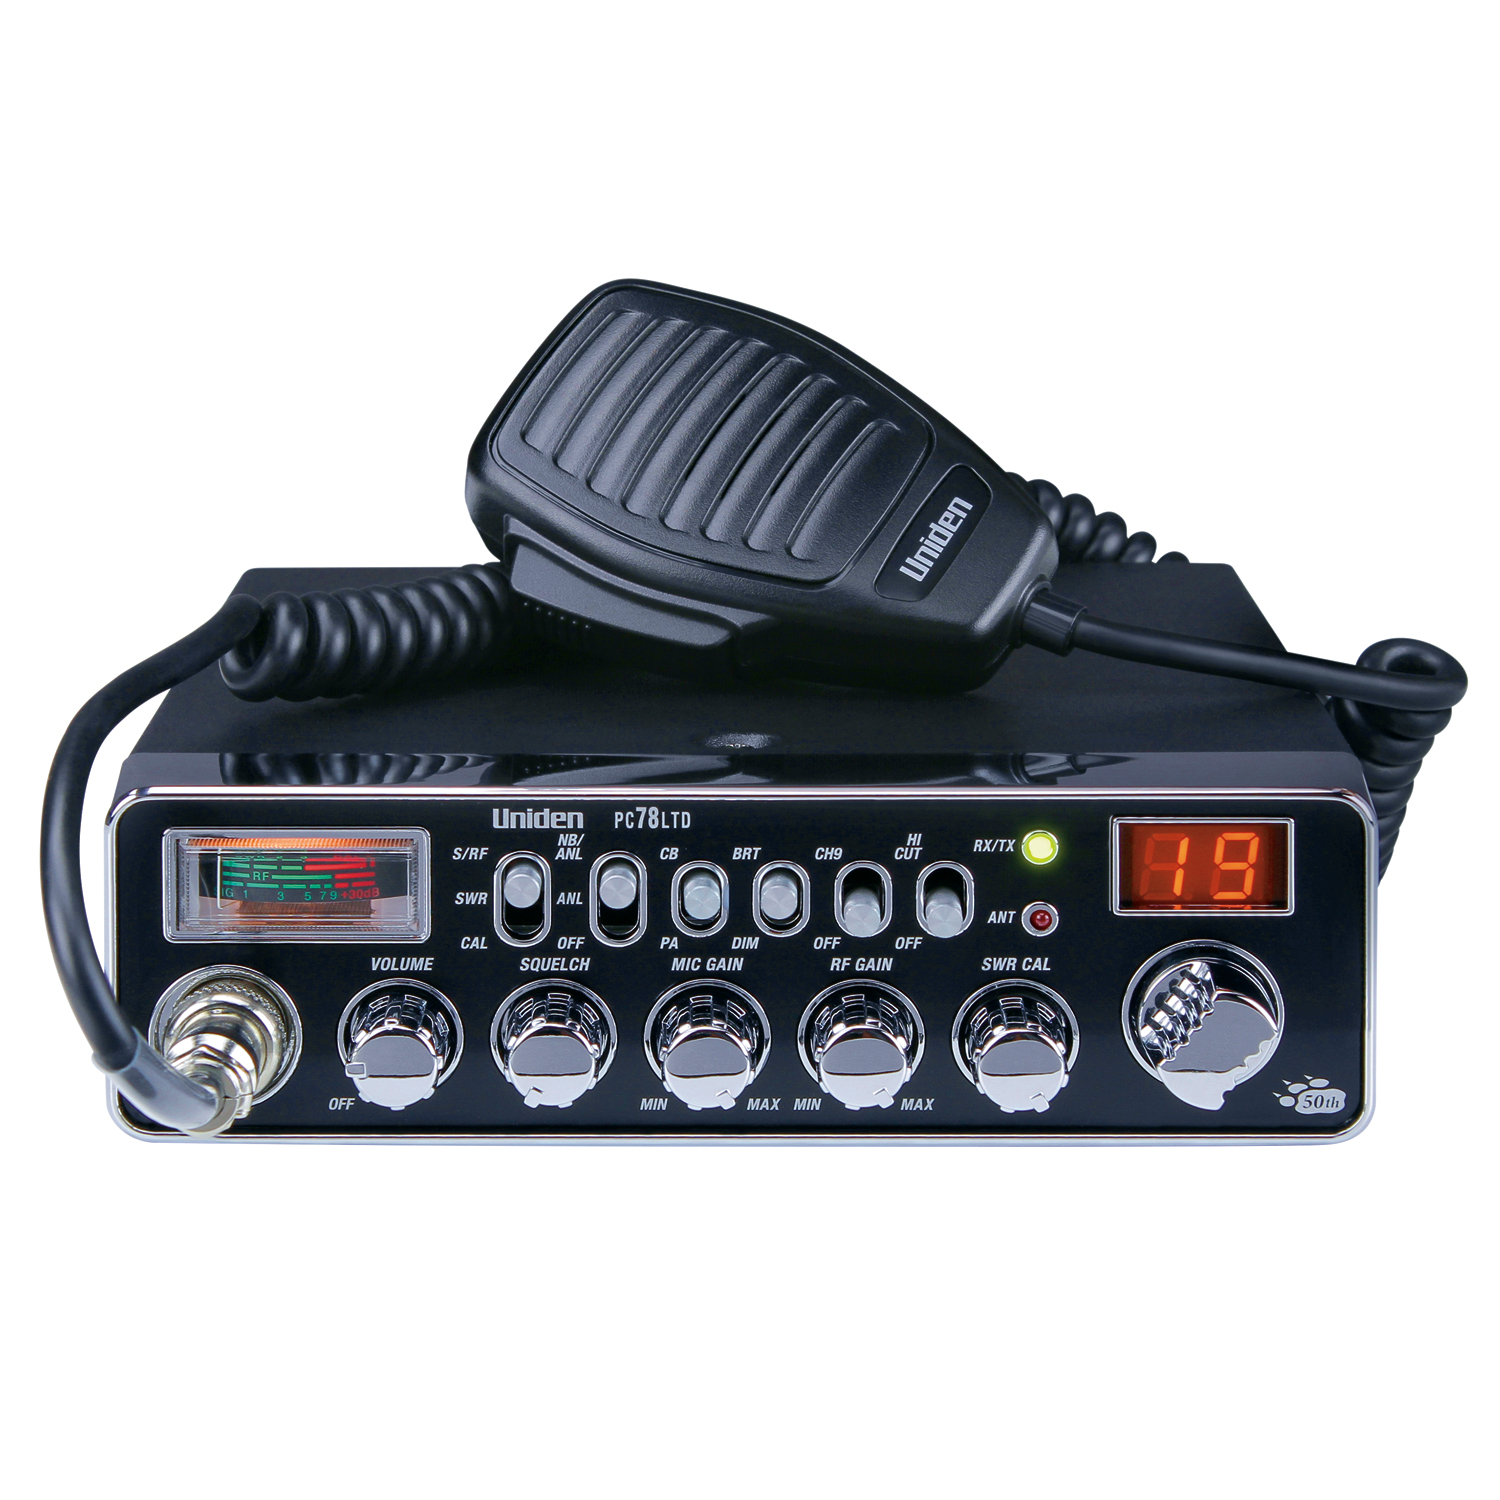 PC78LTD - Uniden Limited Edition Professional 40 Channel CB Radio